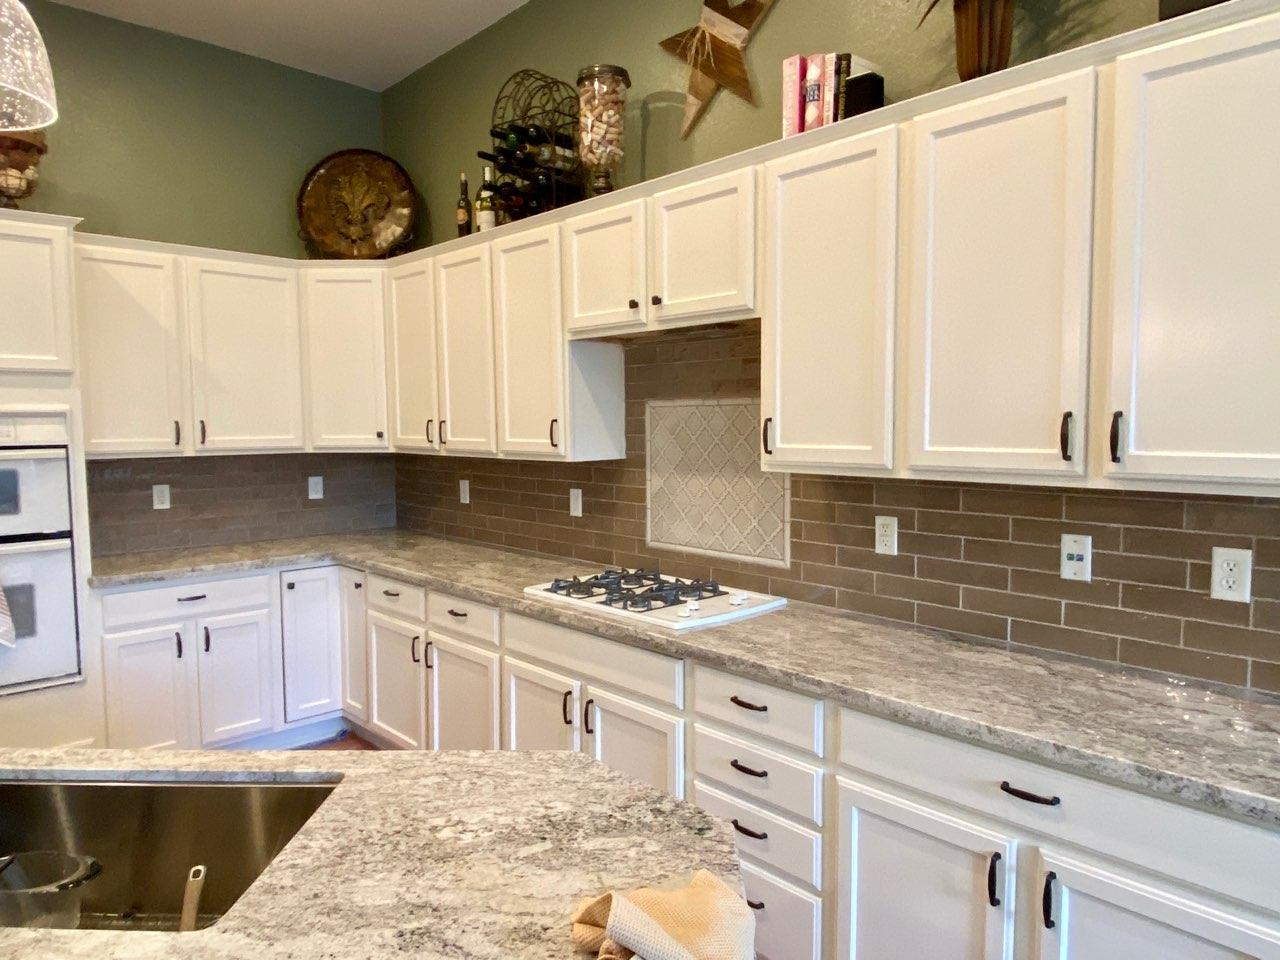 countertops granite countertops kitchen Granite countertops Fresno California kitchen cabinets Fresno California Affordable Designer Granite